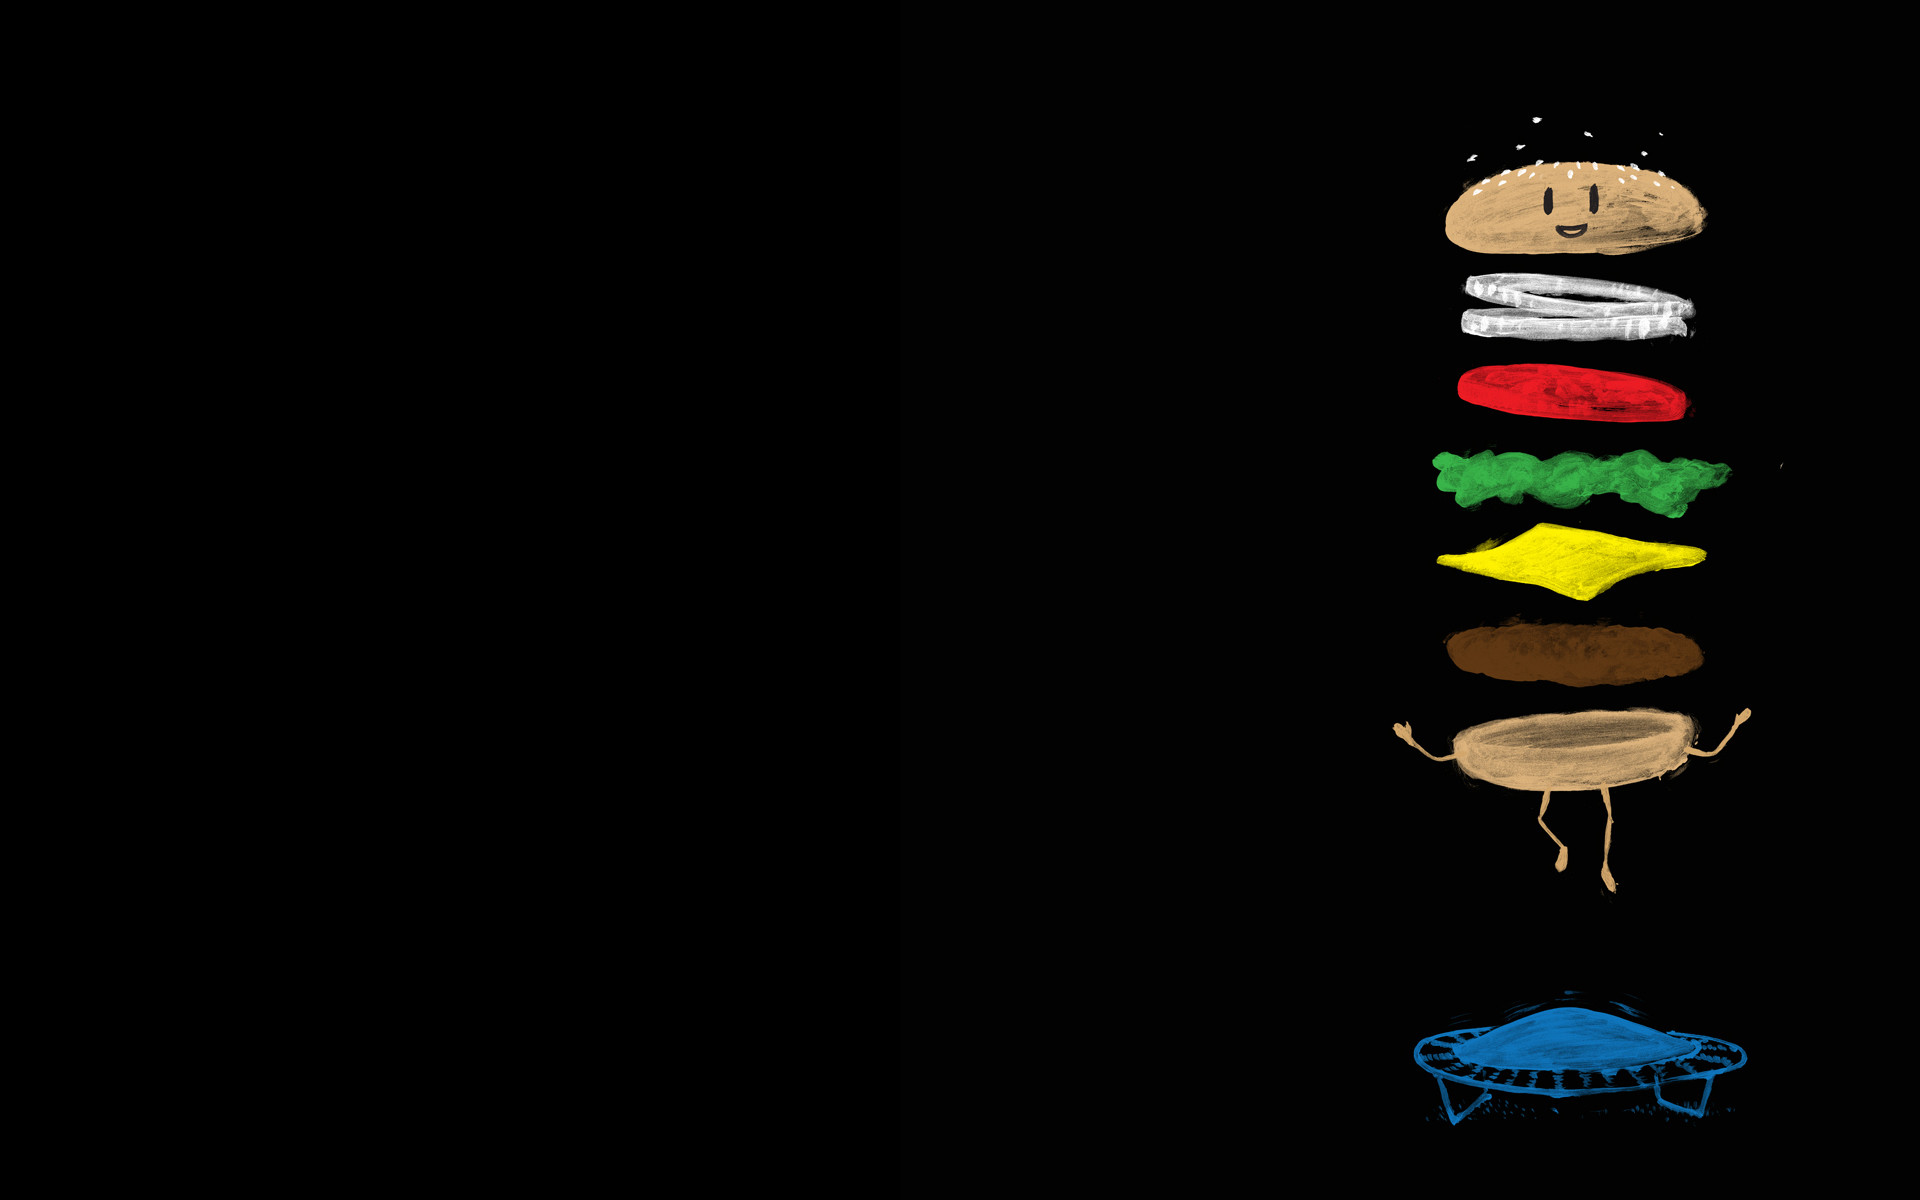 Jumping Hamburger Backgrounds for Powerpoint Presentations, Jumping .